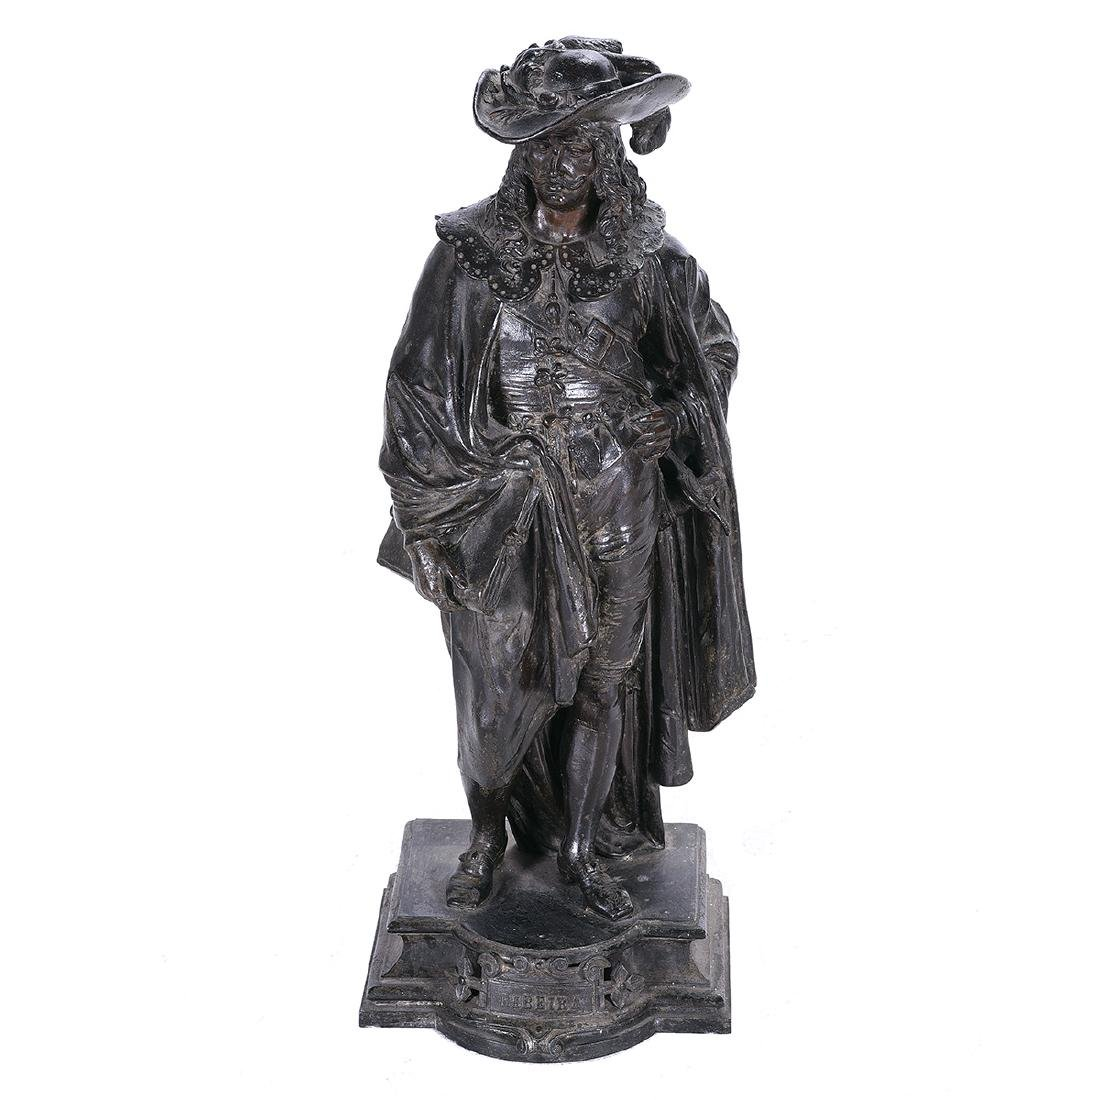 French Bronze Figure of a 17th Century Cavalier, Late